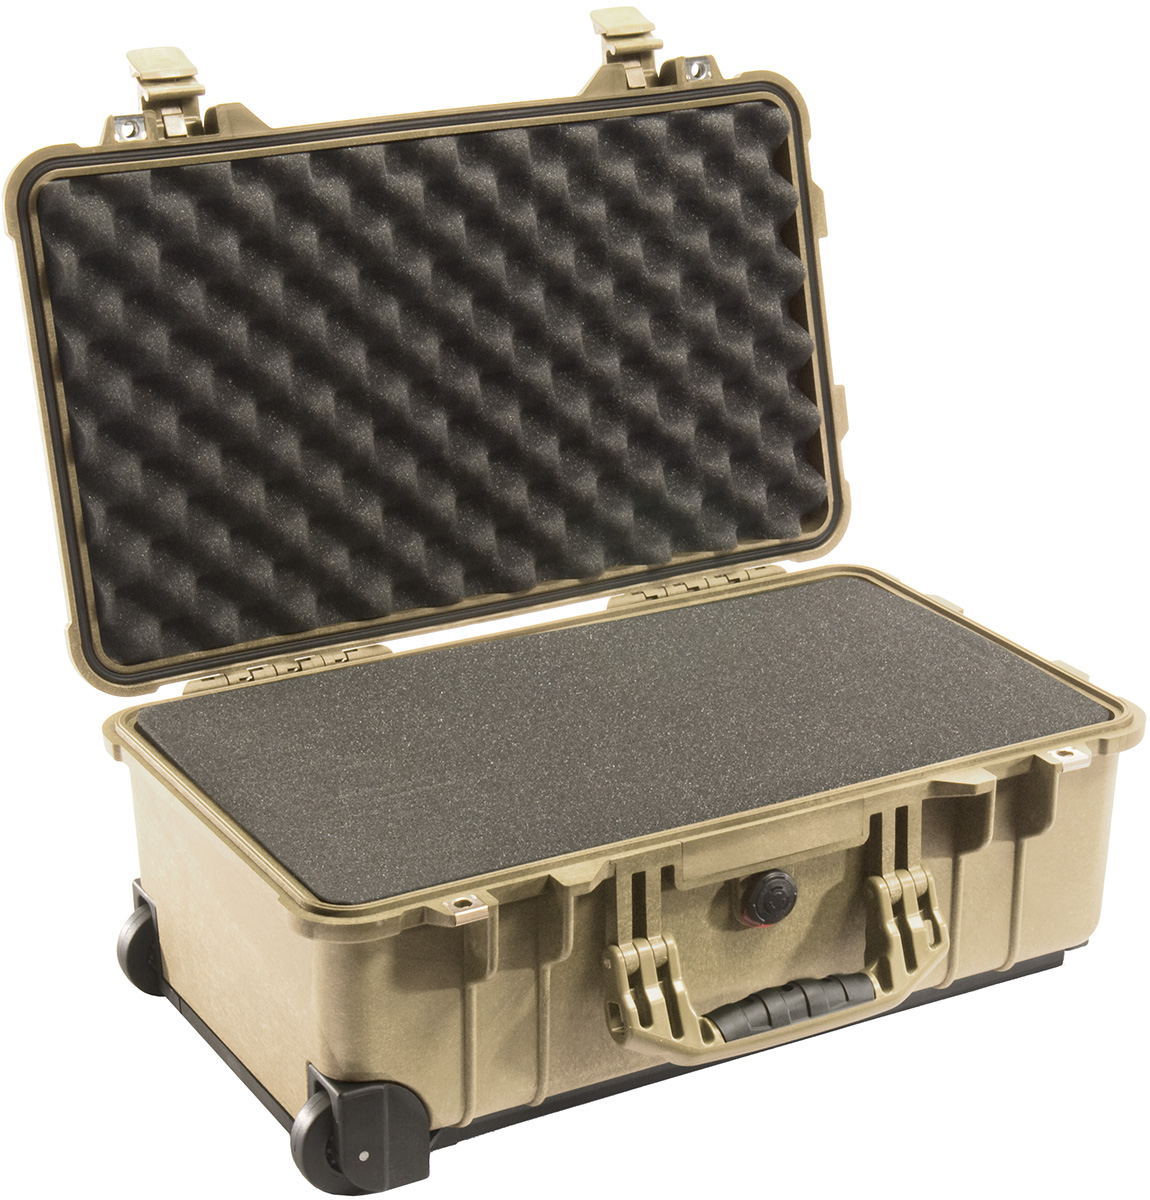 pelican peli products 1510 protective travel carry on suit case